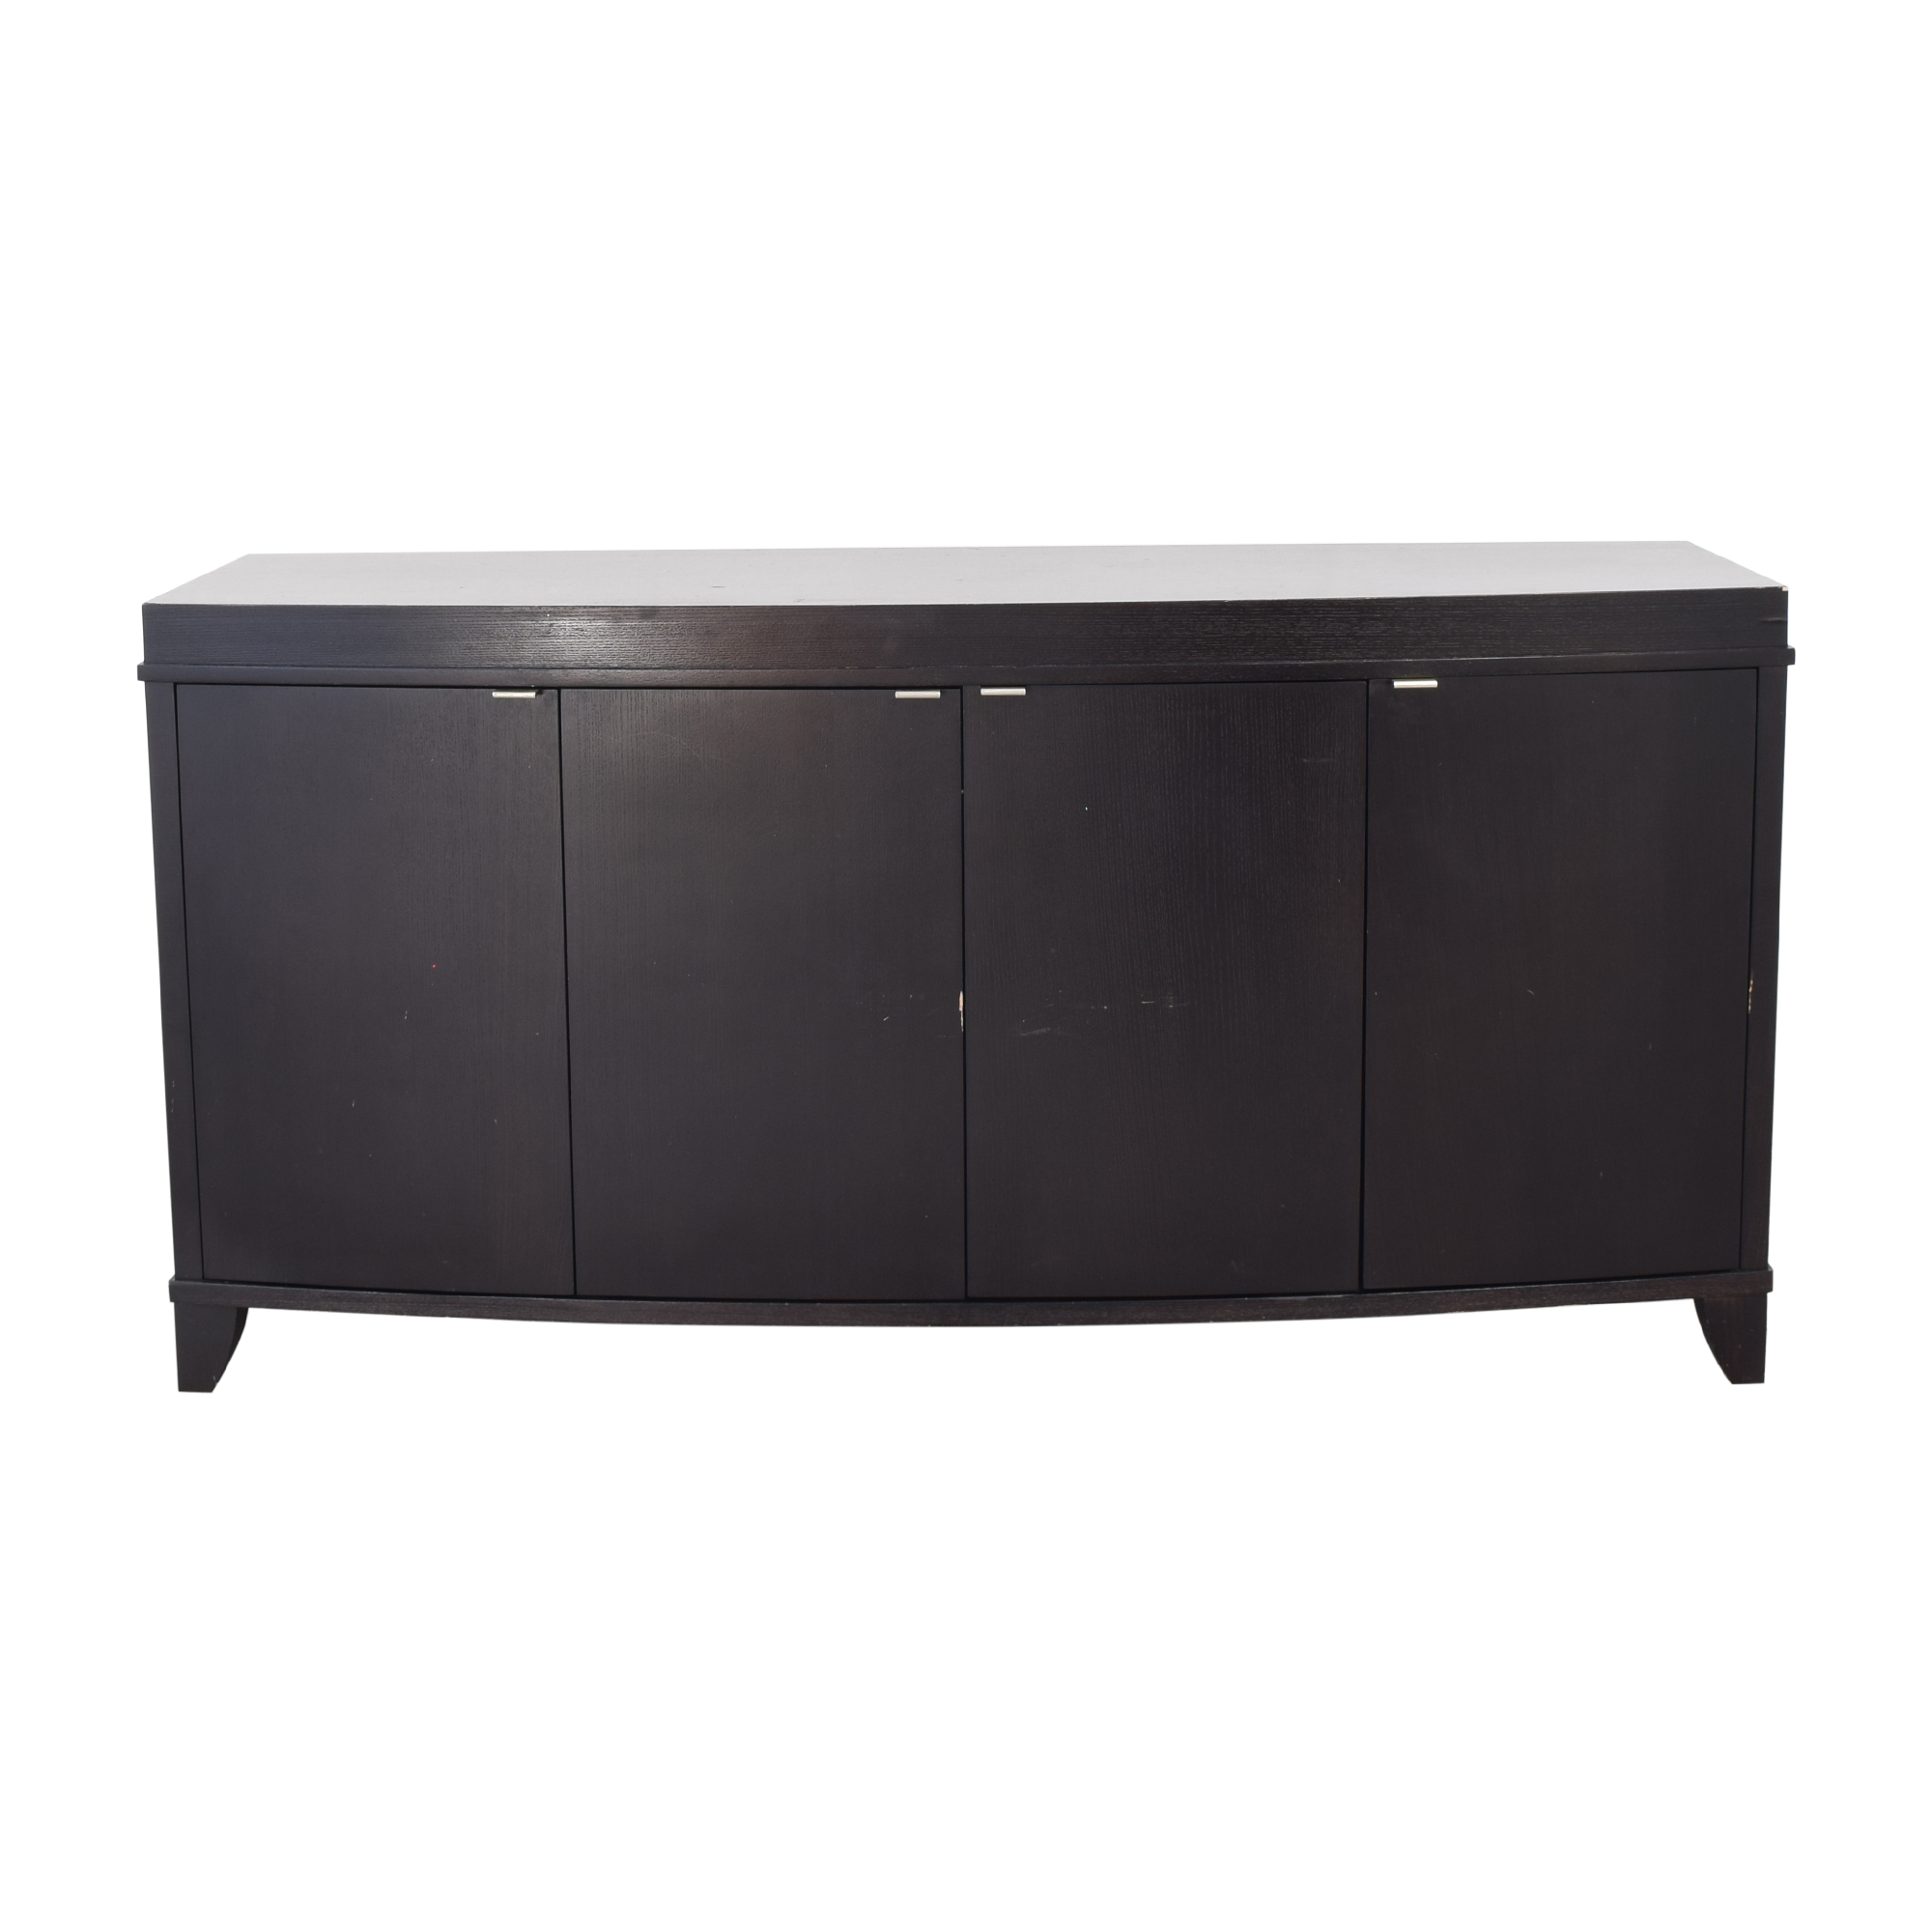 buy Crate & Barrel Sideboard Crate & Barrel Cabinets & Sideboards